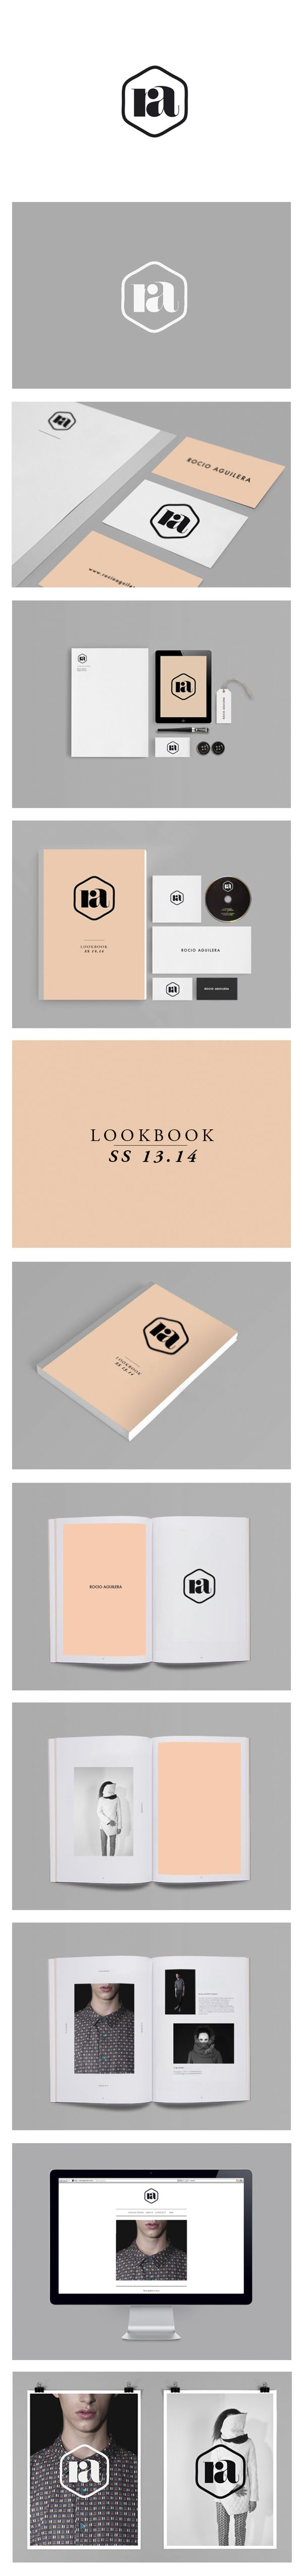 Branding, stationary and look book design for clothing label Rocio Aguilera. by David Sanden on Behance